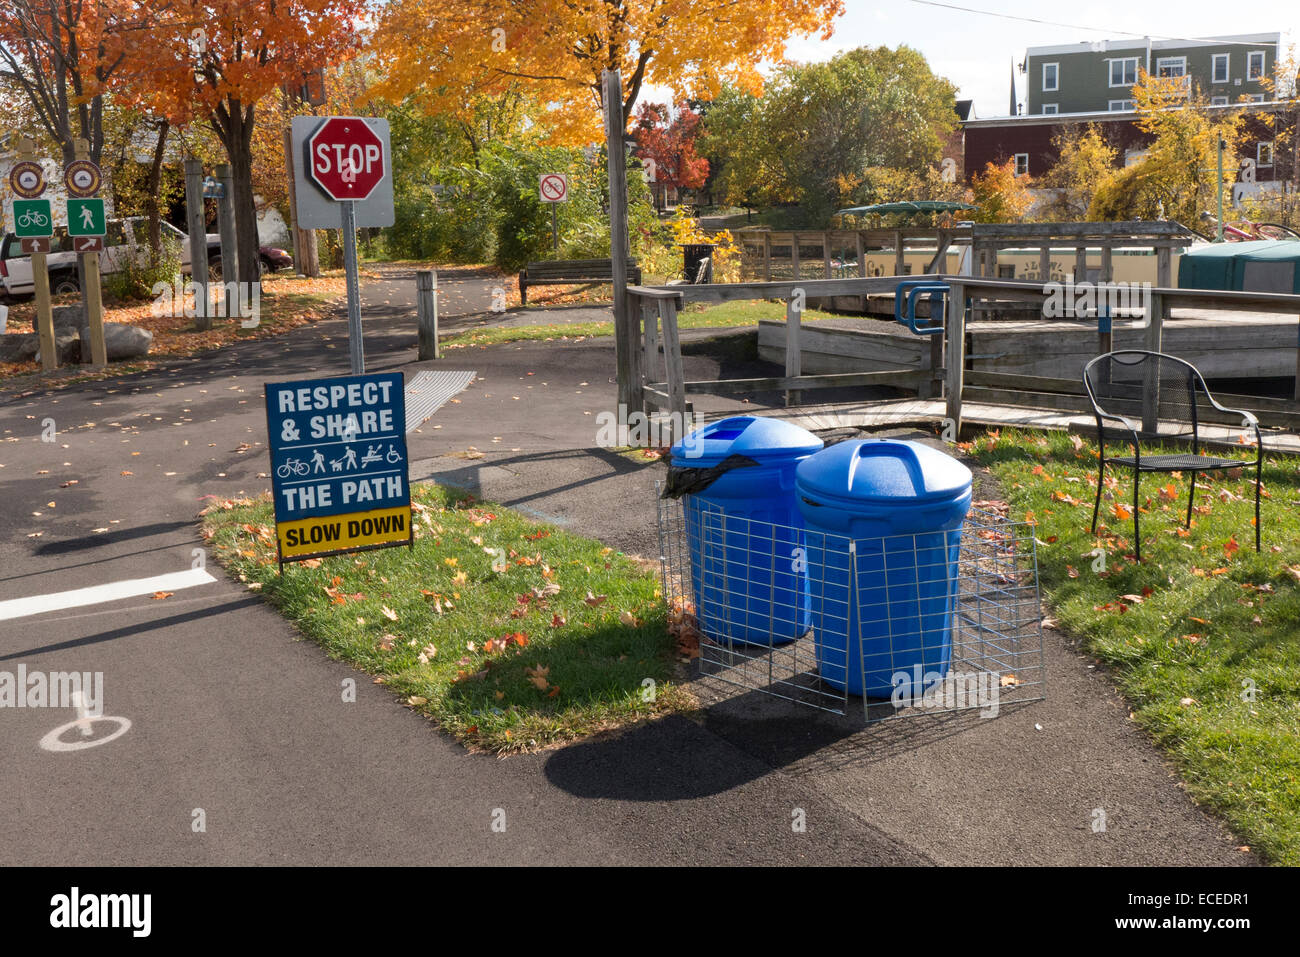 Trash cans on bike path by Erie Canal. - Stock Image